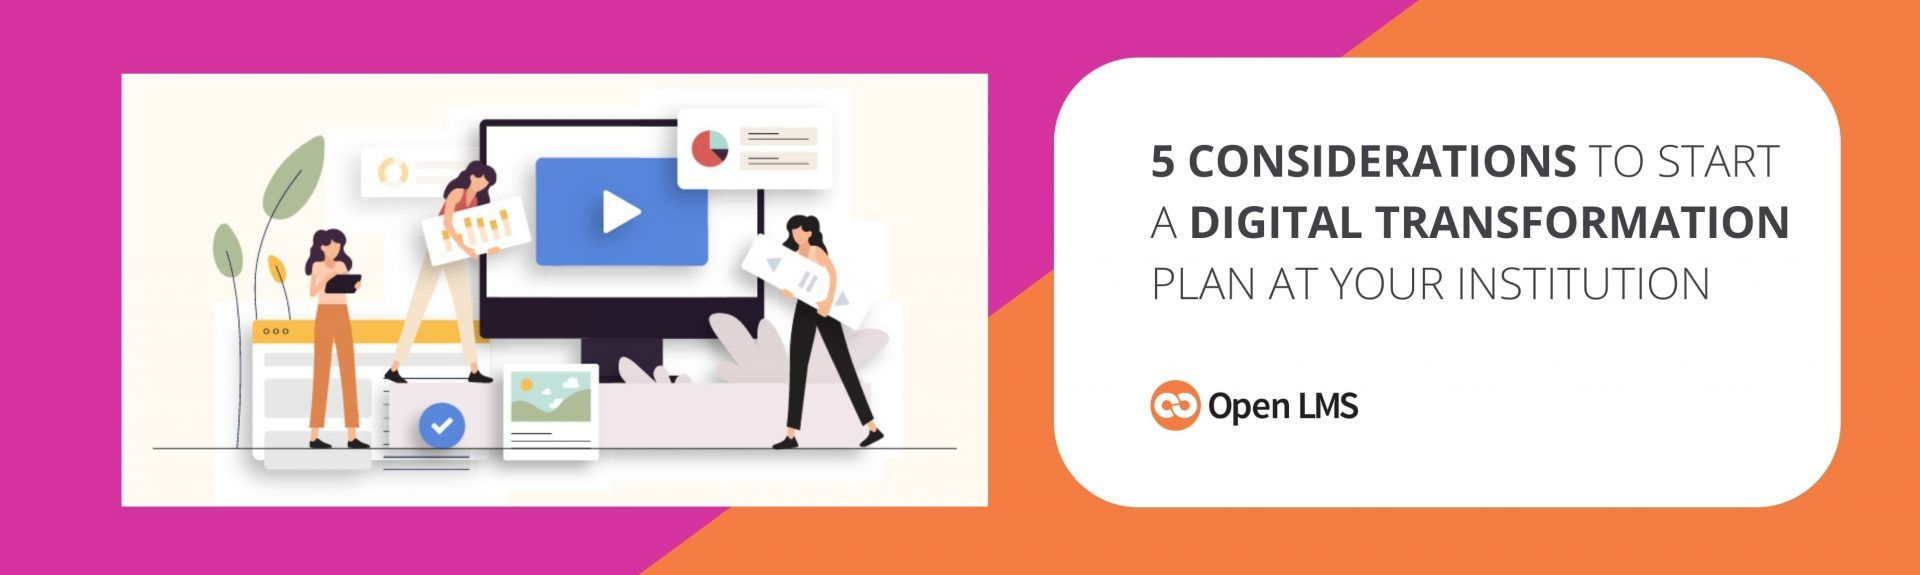 5 Considerations to Start a Digital Transformation Plan at Your Institution